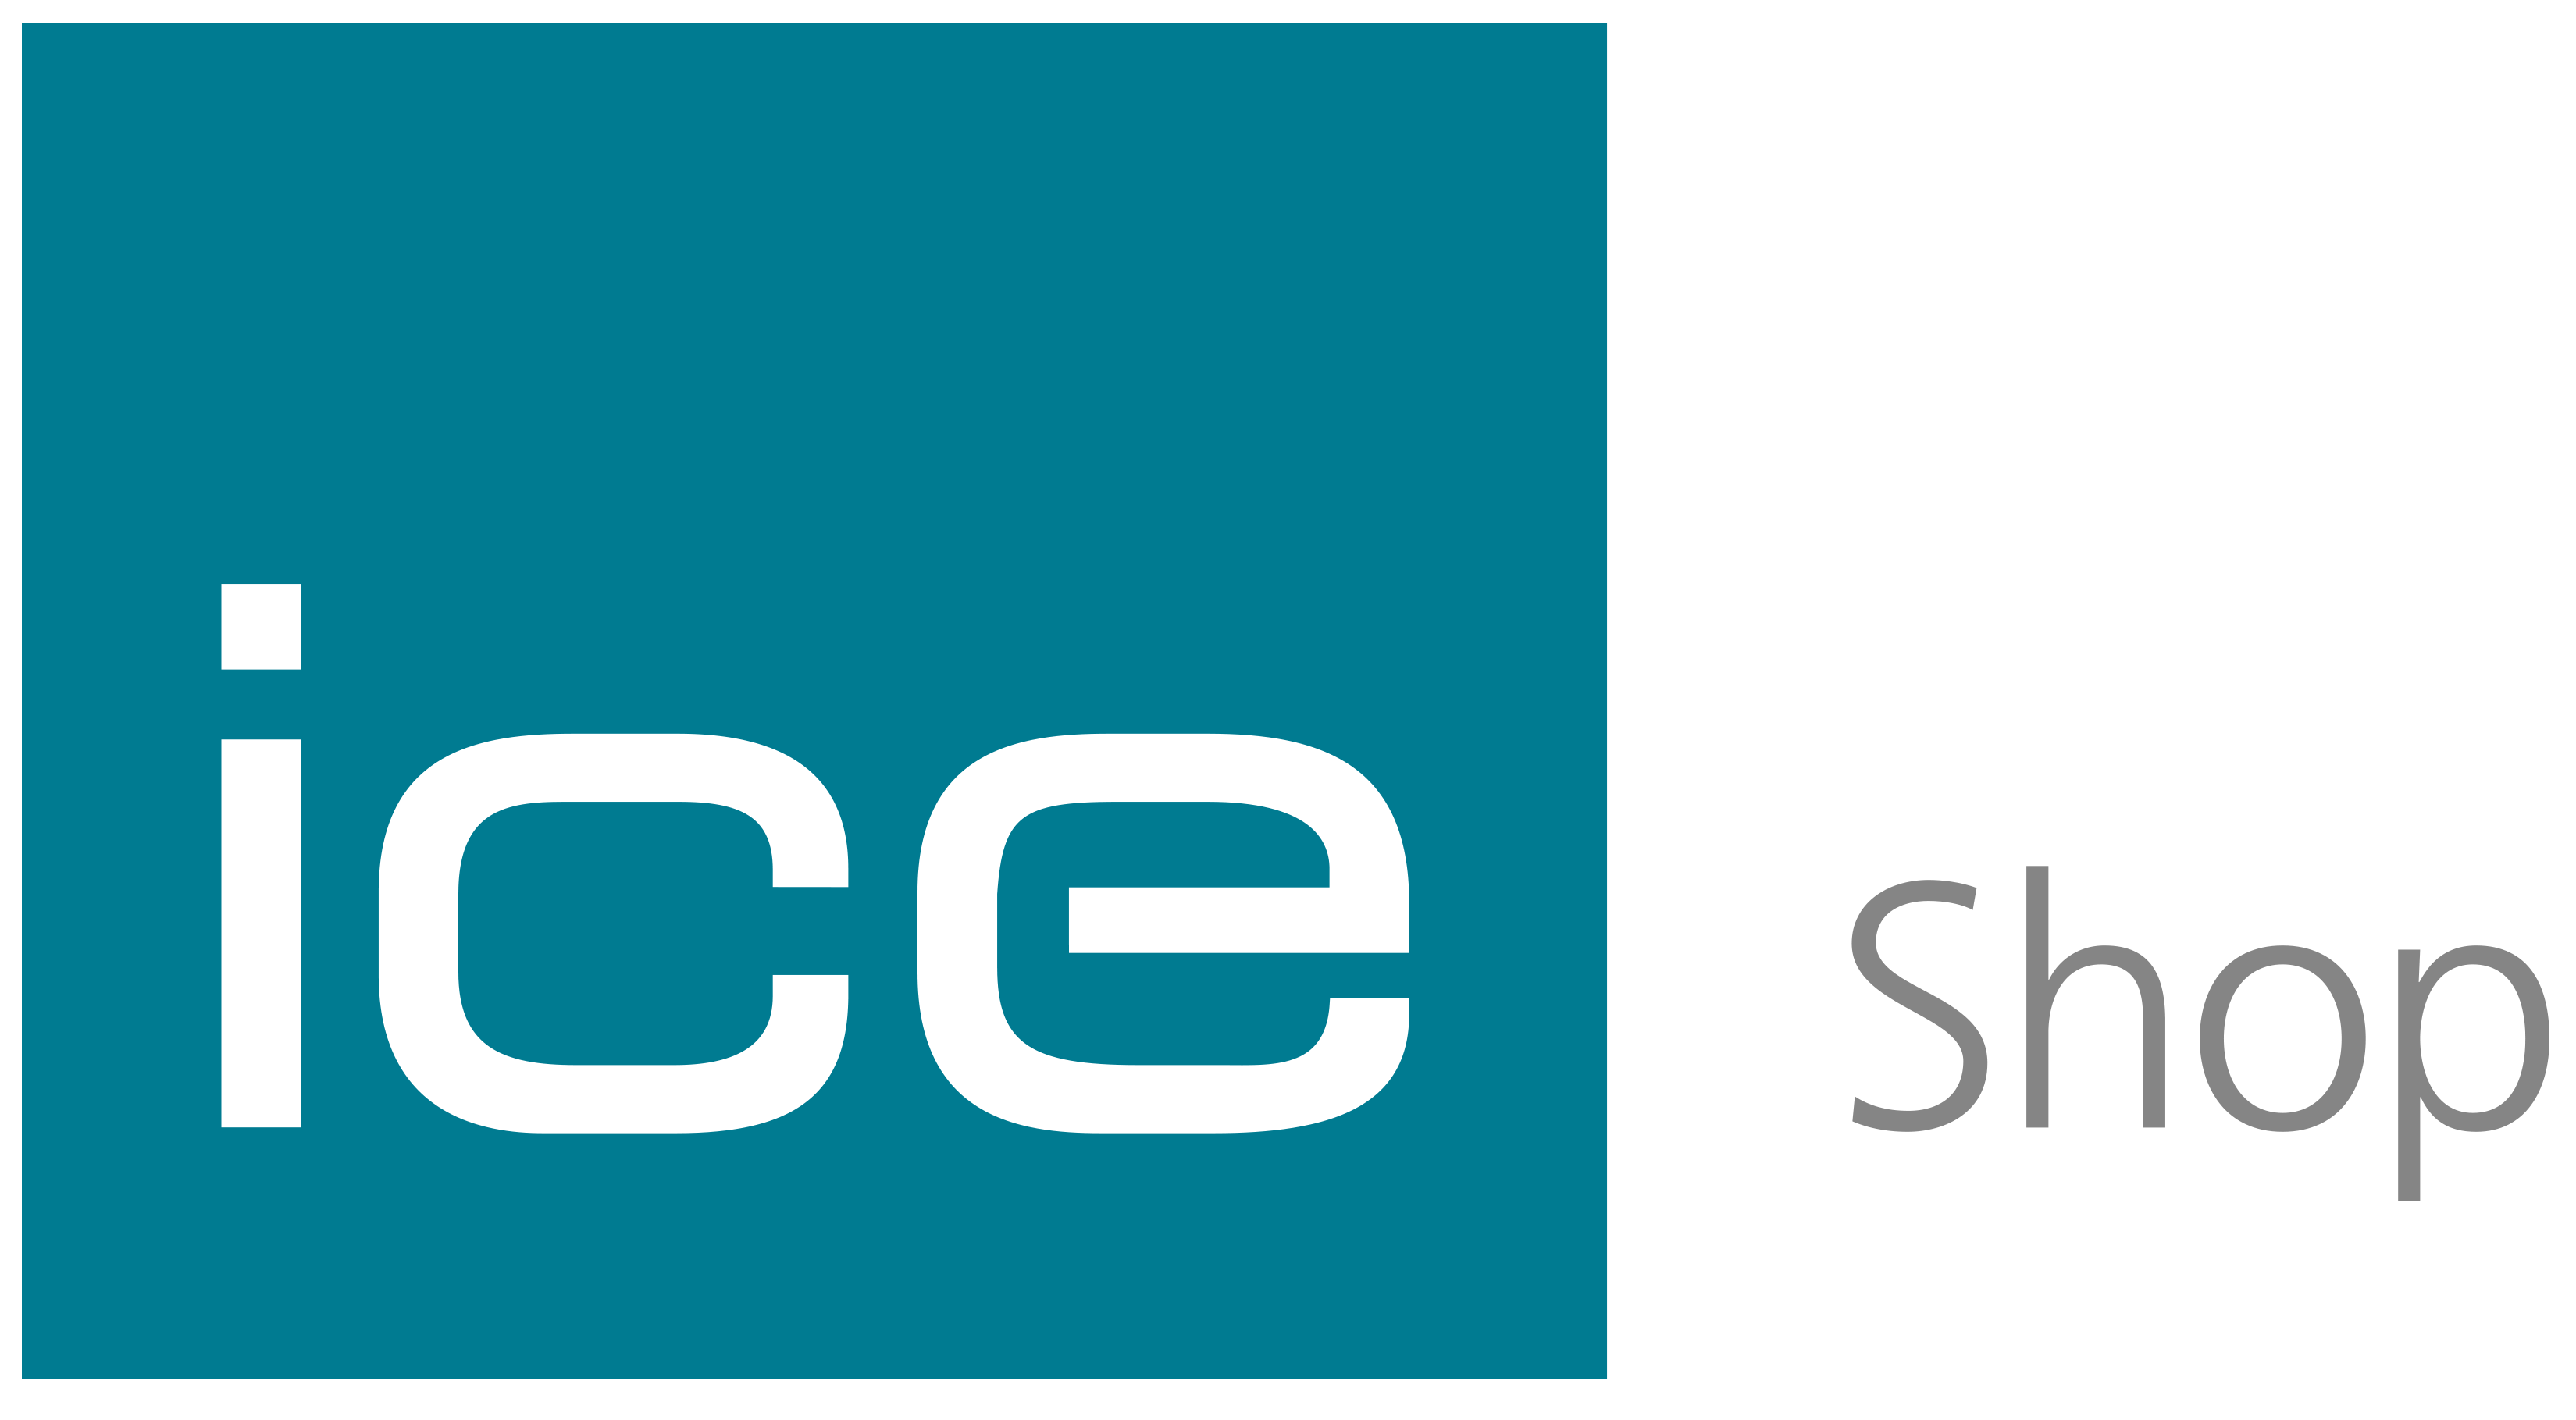 Ice shop logo